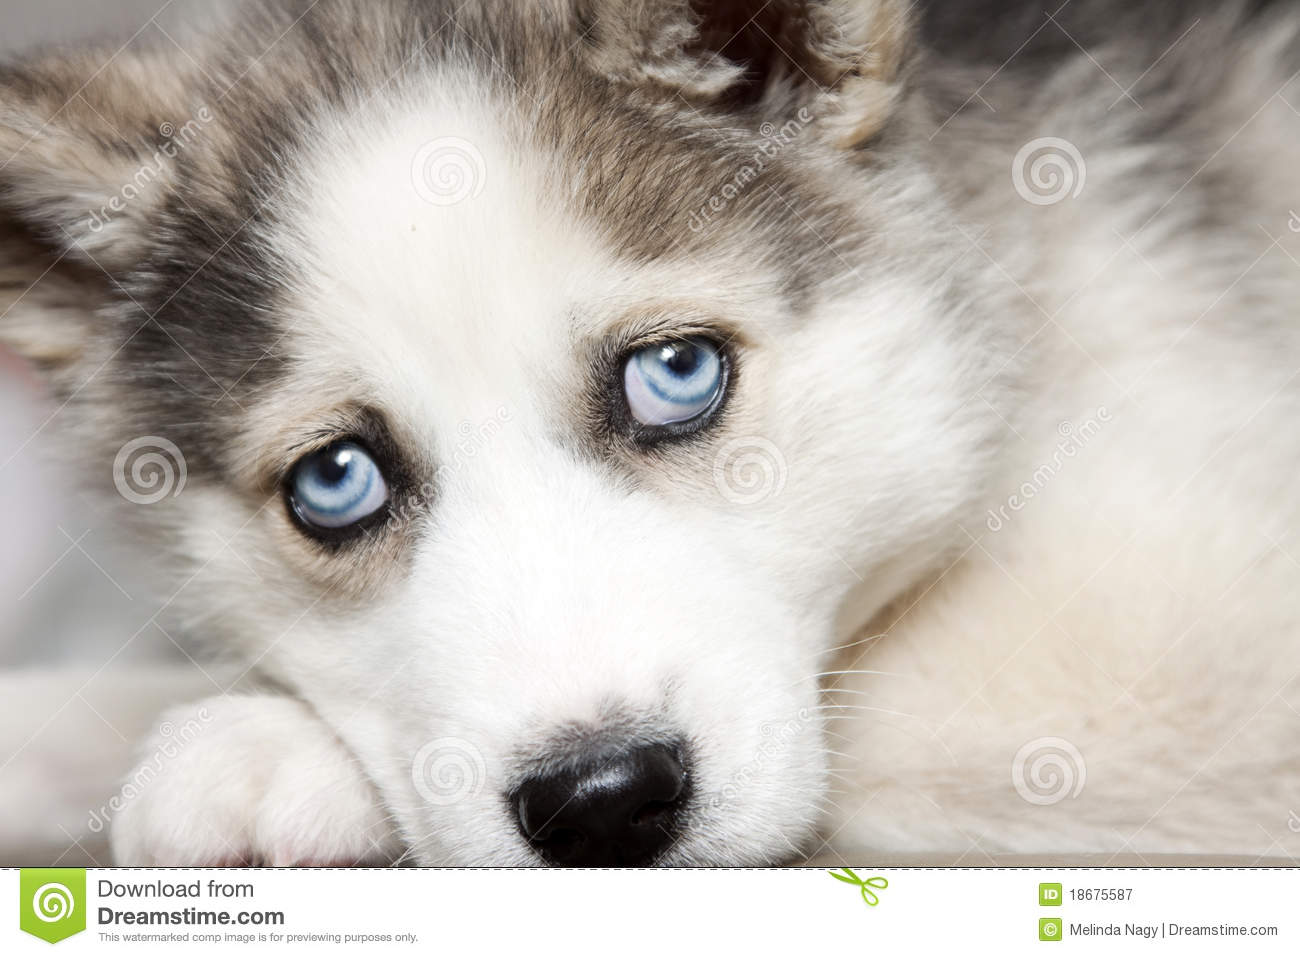 Solid Black Siberian Husky With Blue Eyes Blue eyes of cute siberian